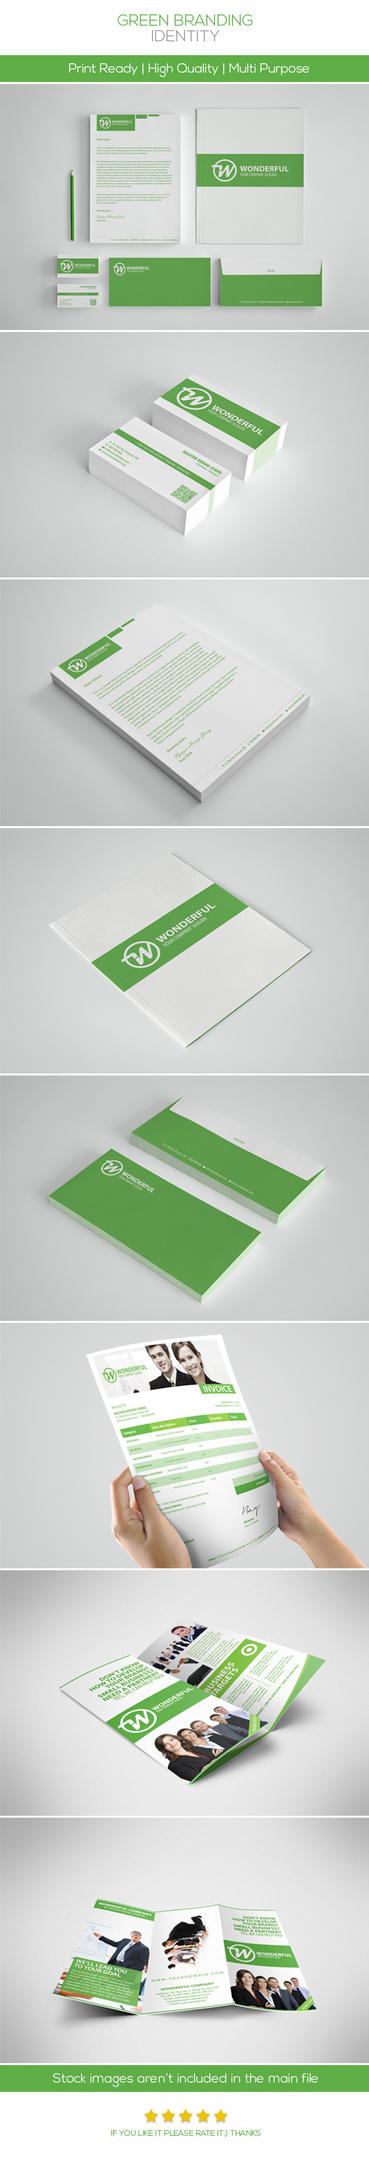 Green Branding Identity by hoanggiang12